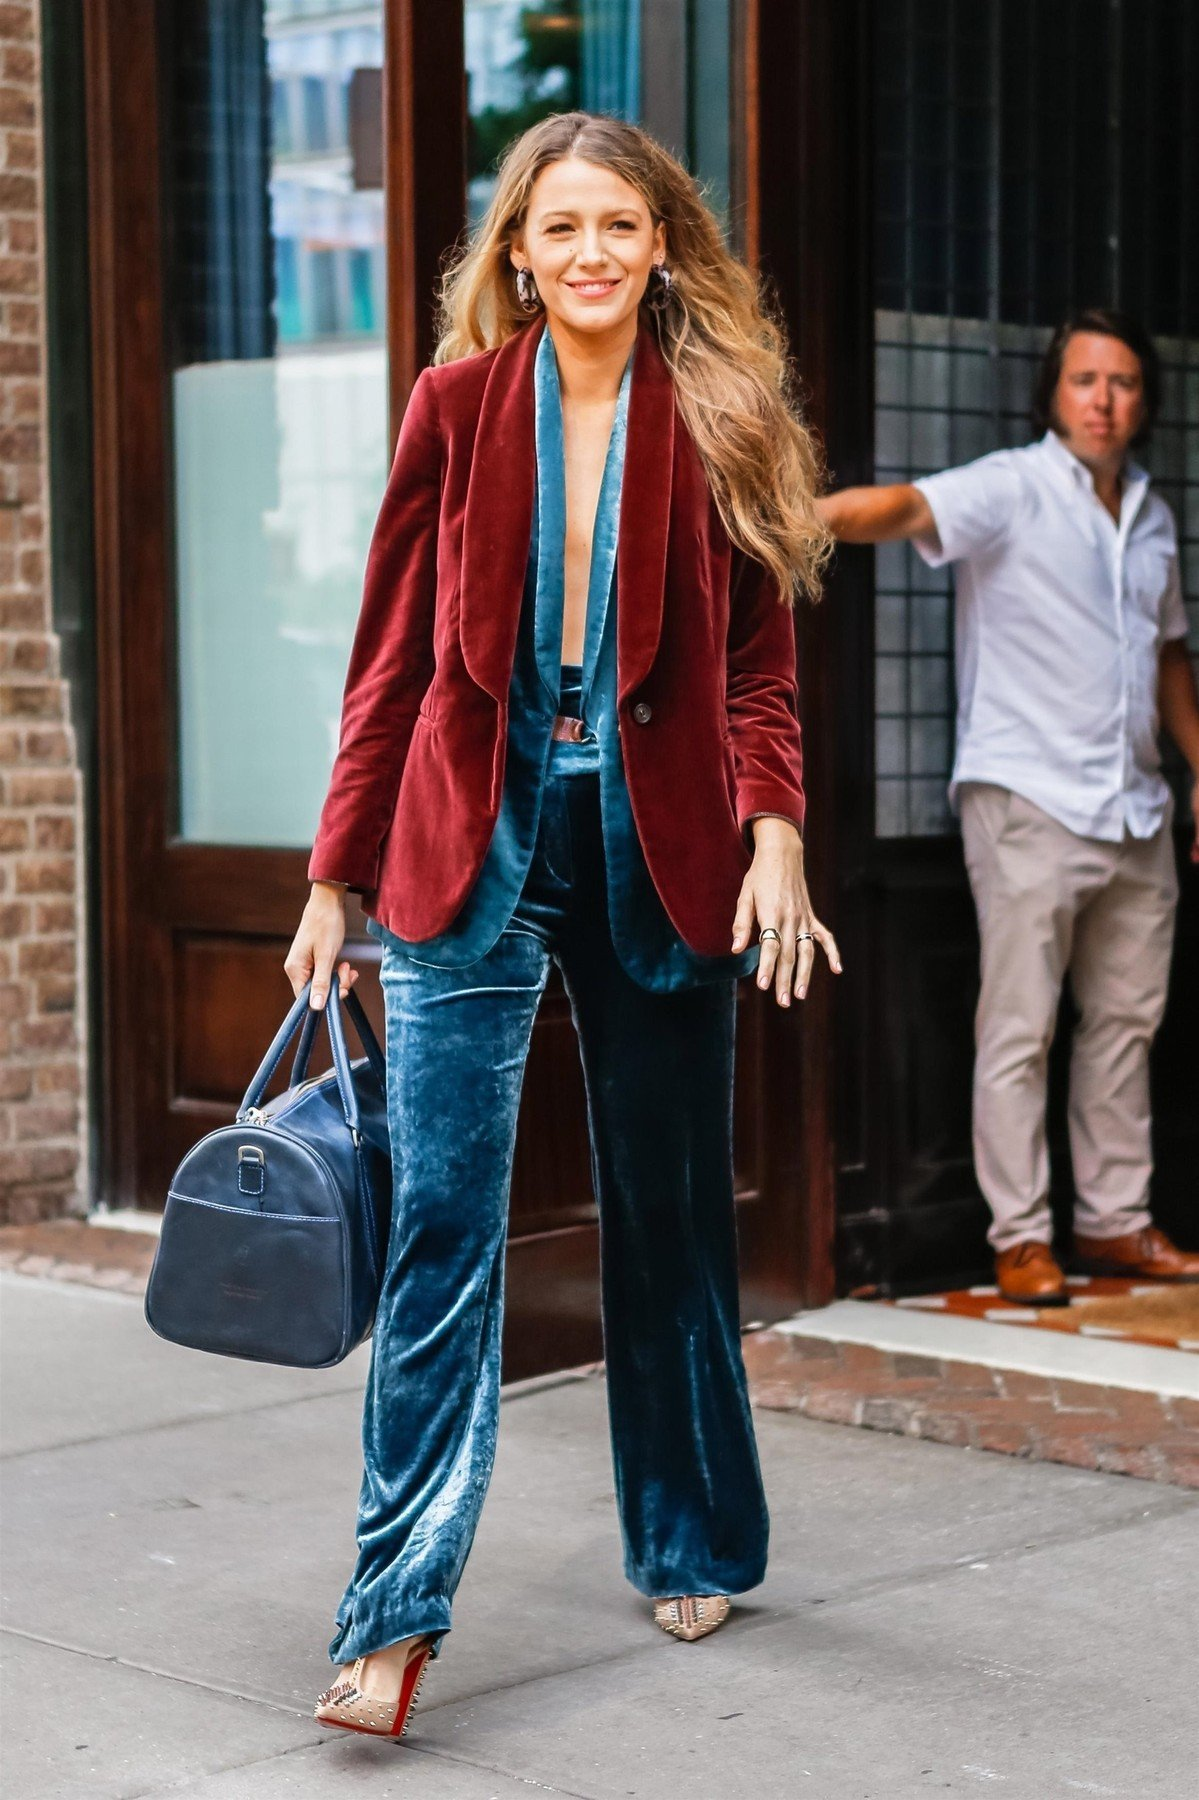 New York, NY  - Actress Blake Lively steps out looking casual leaving her hotel in New York, on her way to photo shoot  Pictured: Blake Lively    *UK Clients - Pictures Containing Children Please Pixelate Face Prior To Publication*, Image: 382969810, License: Rights-managed, Restrictions: , Model Release: no, Credit line: Profimedia, AKM-GSI